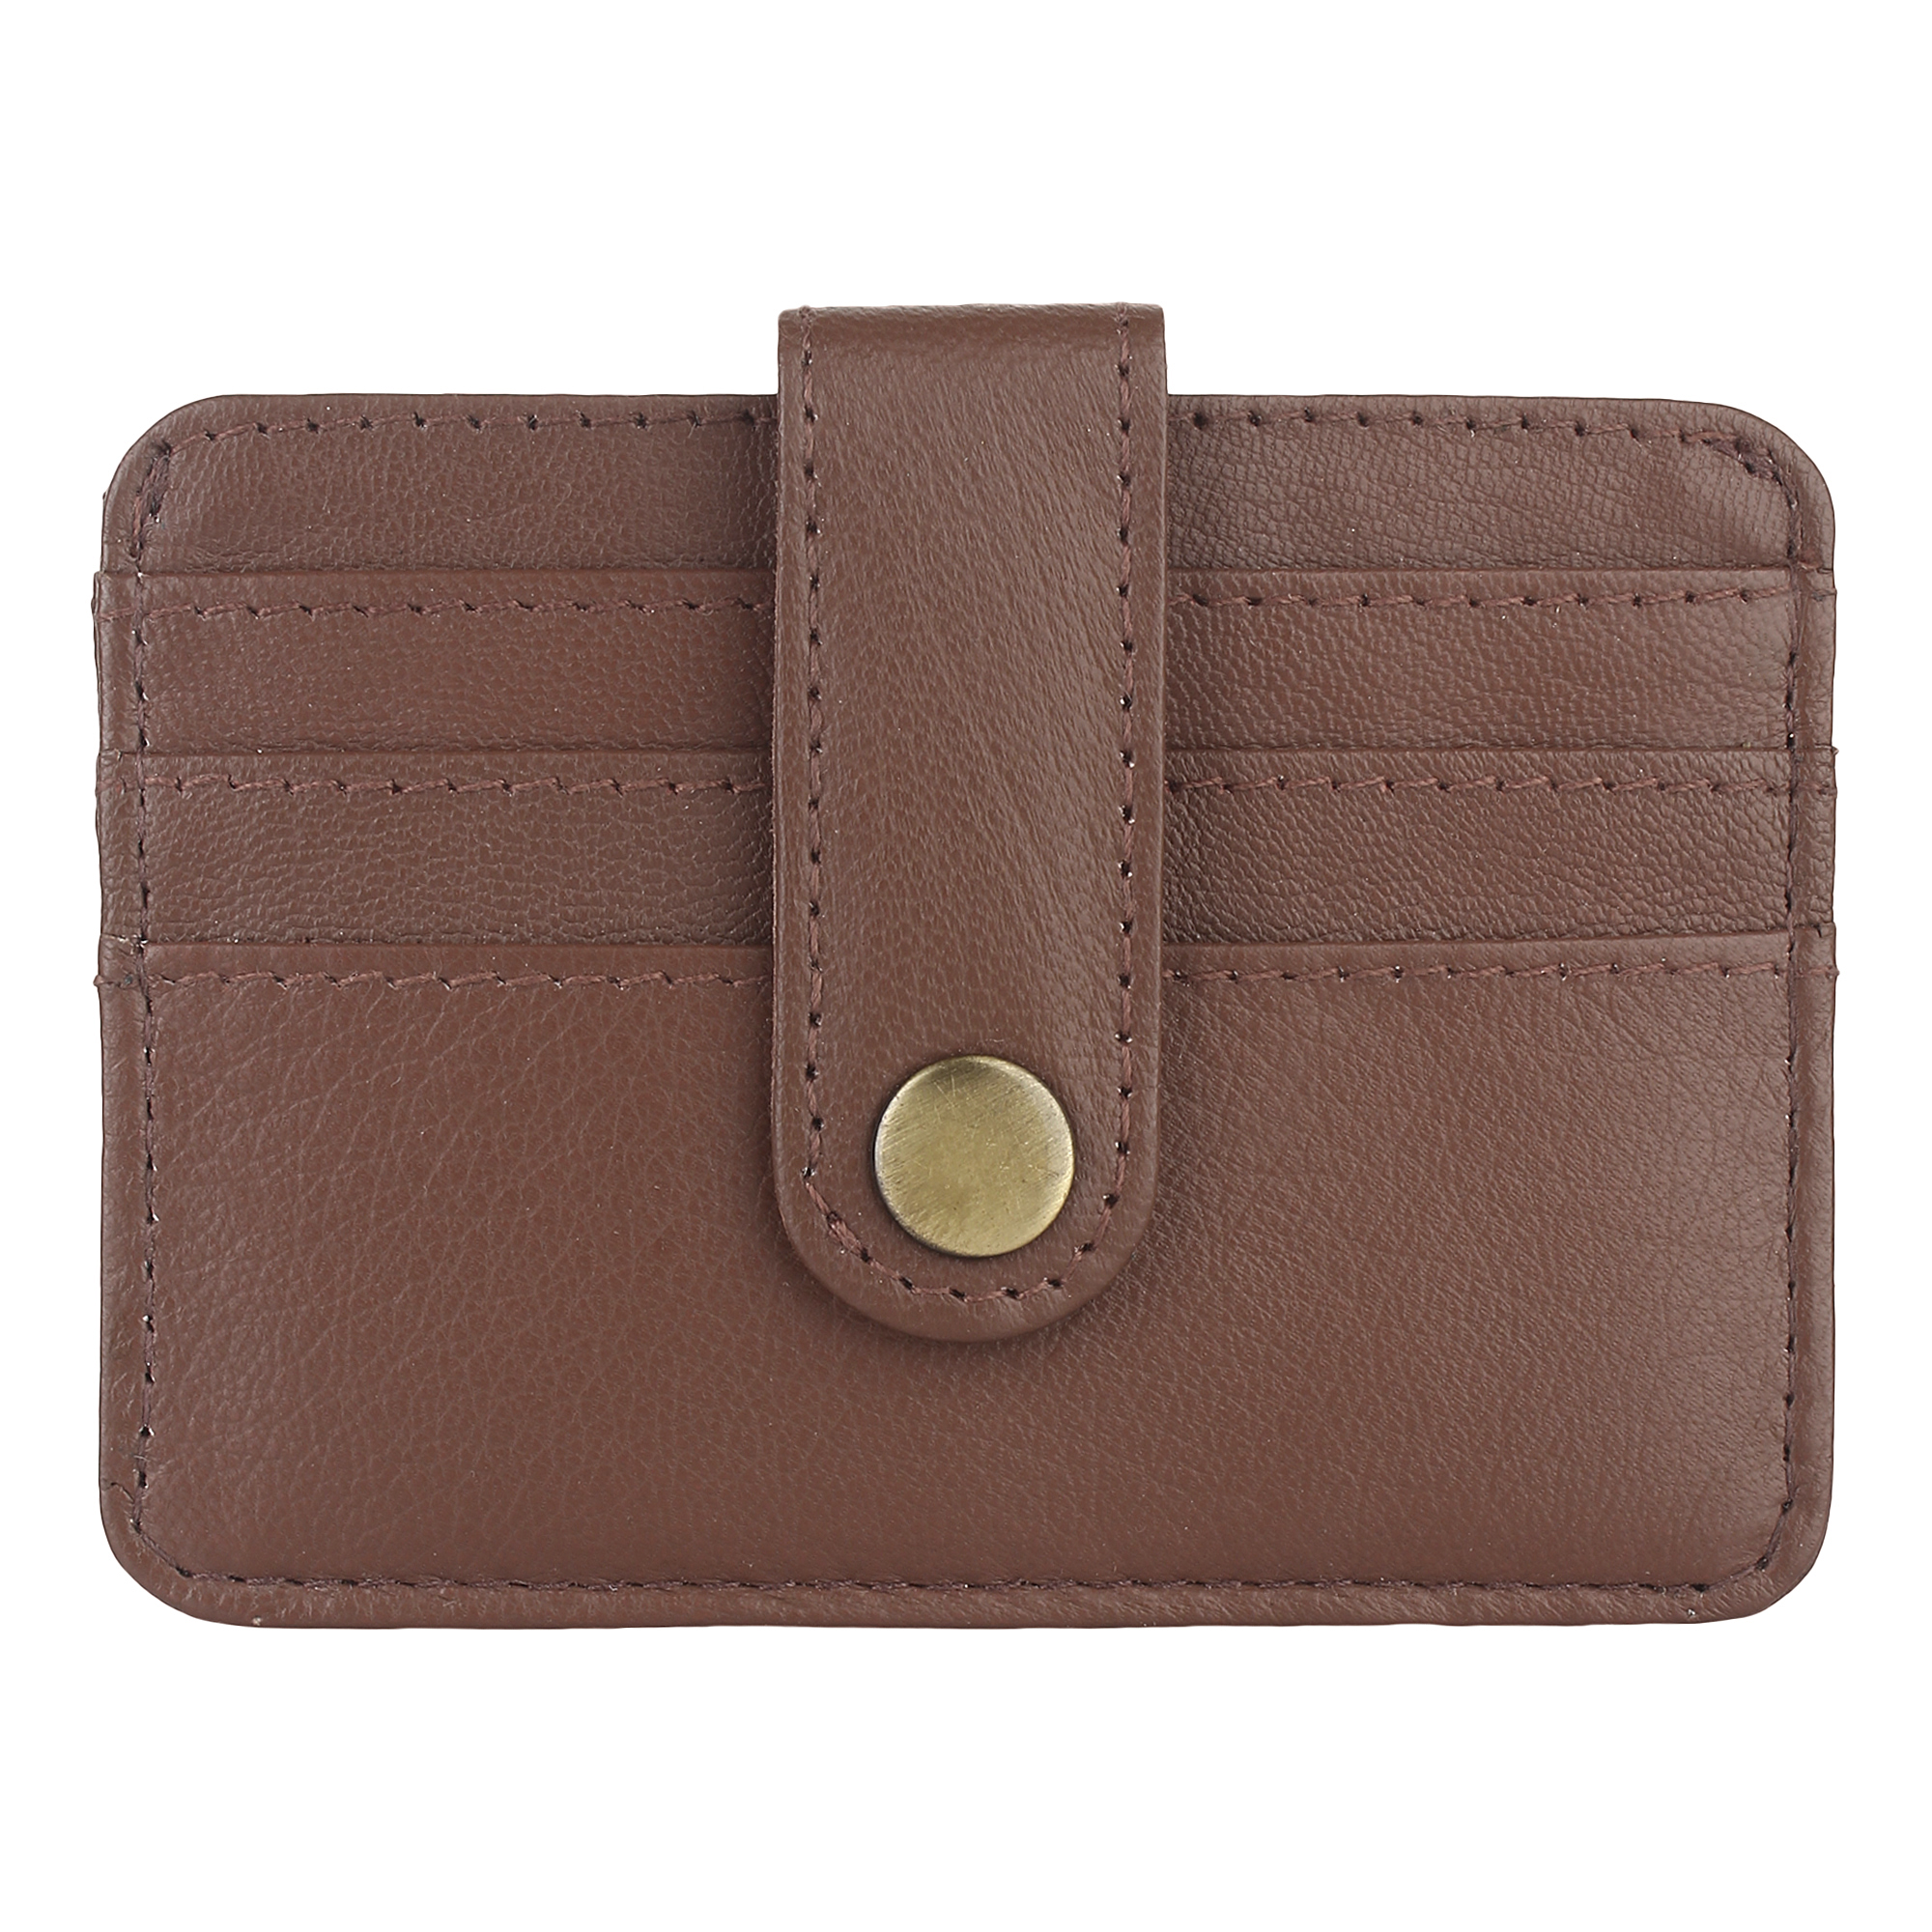 Leather card holder wallet Manufacturers in Venezuela, card holder wallet Suppliers in Venezuela, card holder wallet Wholesalers in Venezuela, card holder wallet Traders in Venezuela